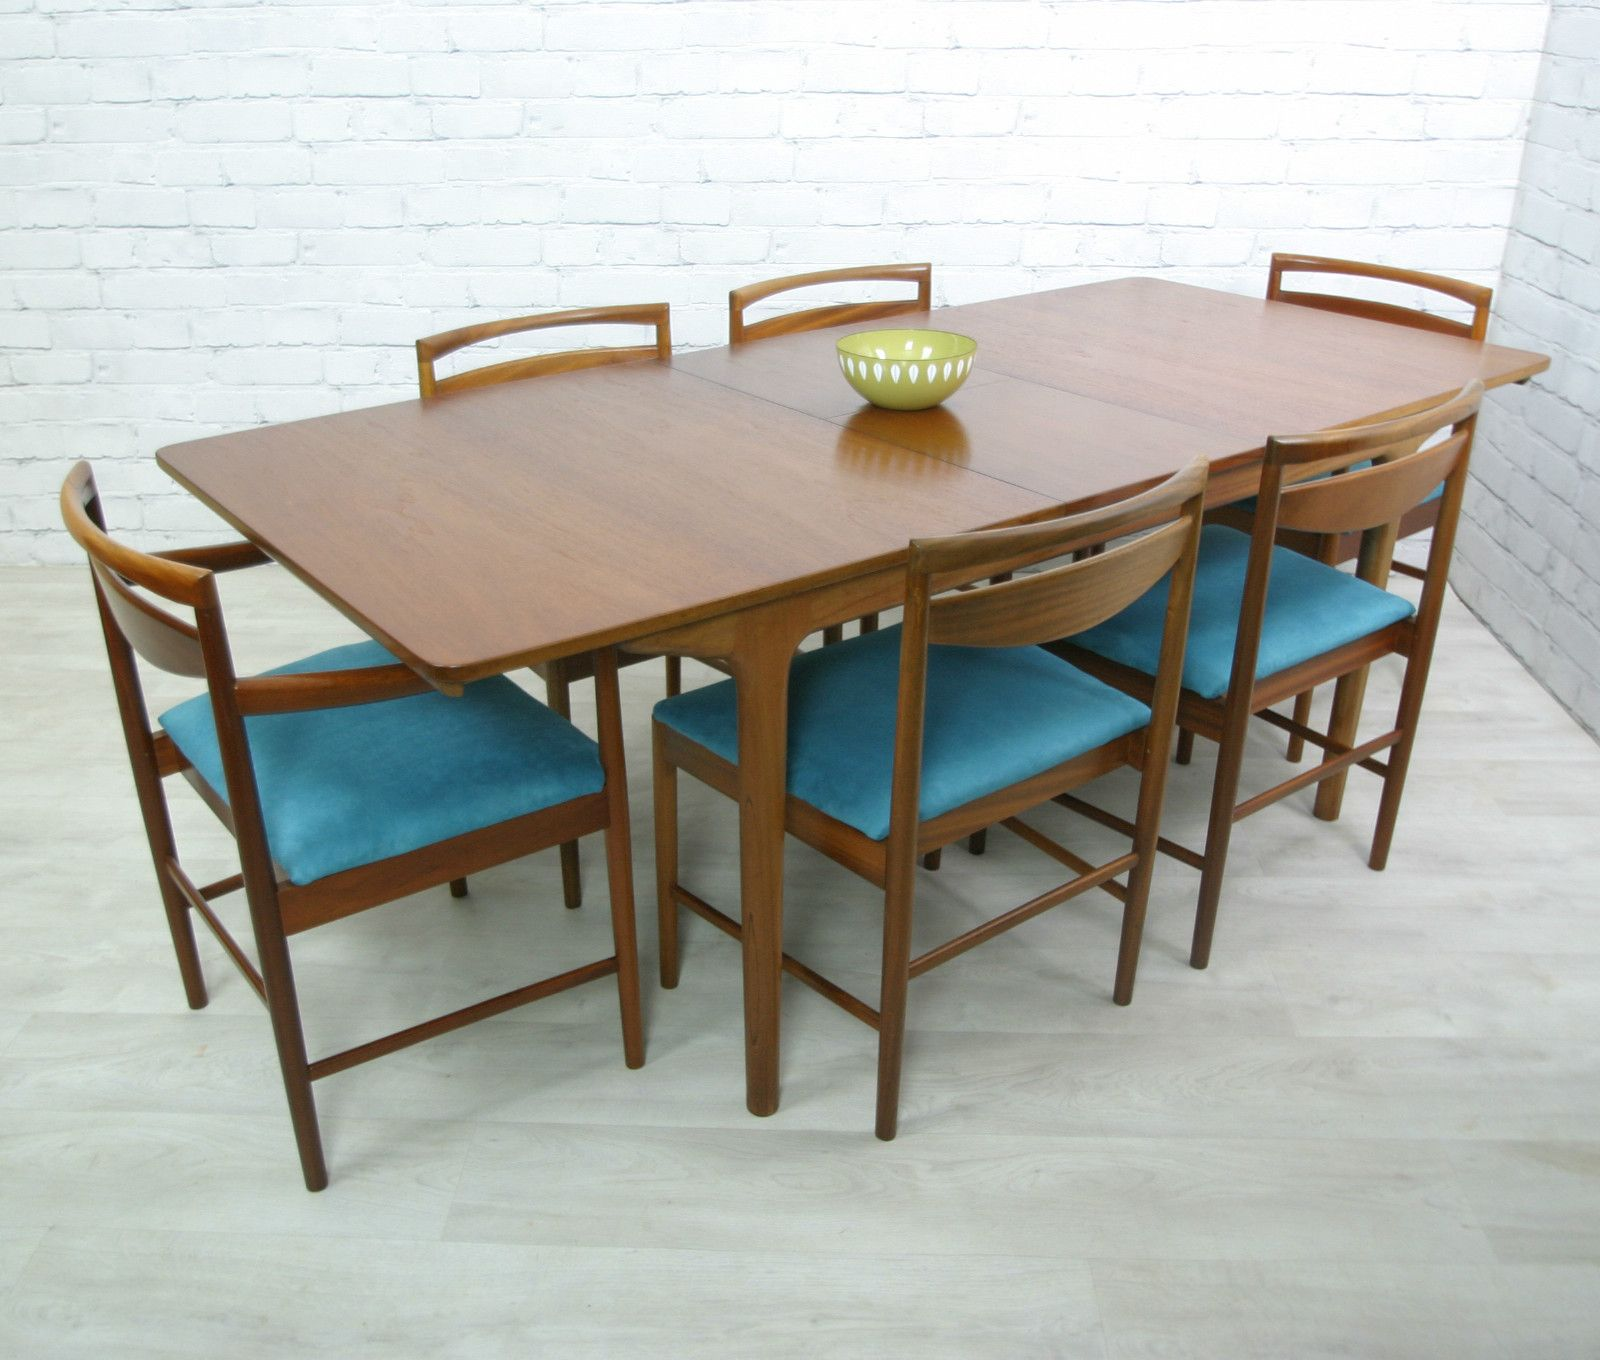 60s Style Couches This Is My Meemee 39s Dining Table Mcintosh Retro Vintage